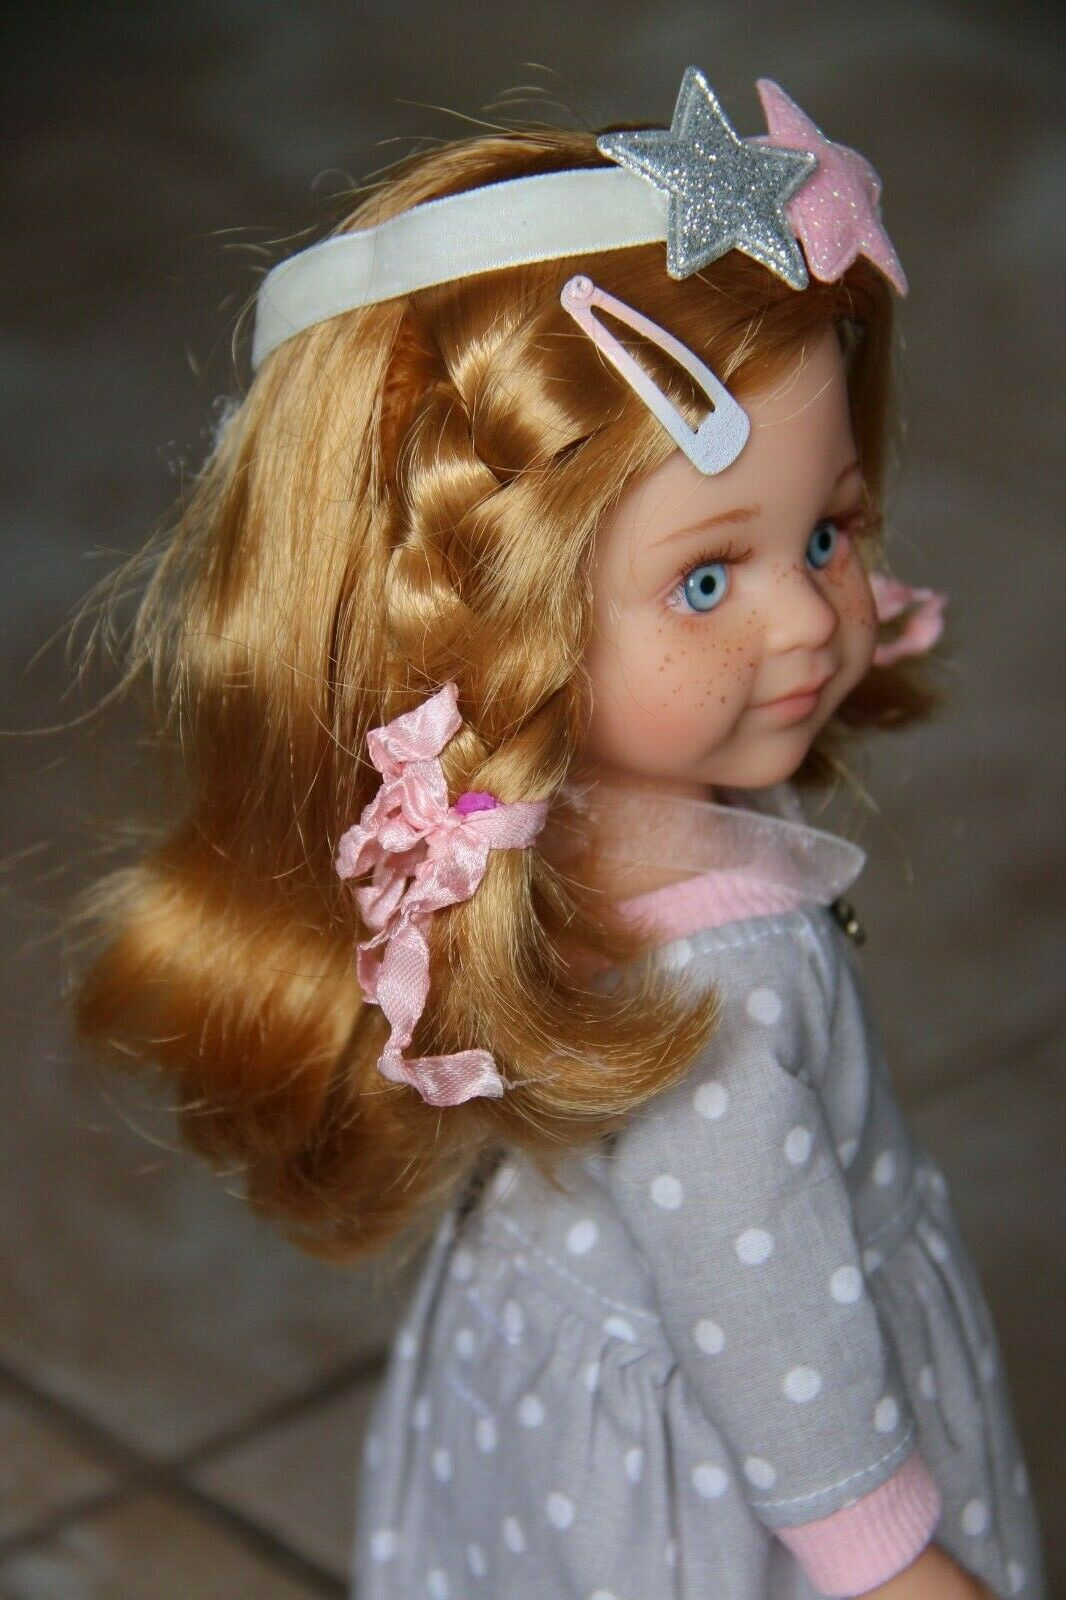 Paola Reina doll OOAK outfit dollMASHA13.5 34cm body 2018by iCukla